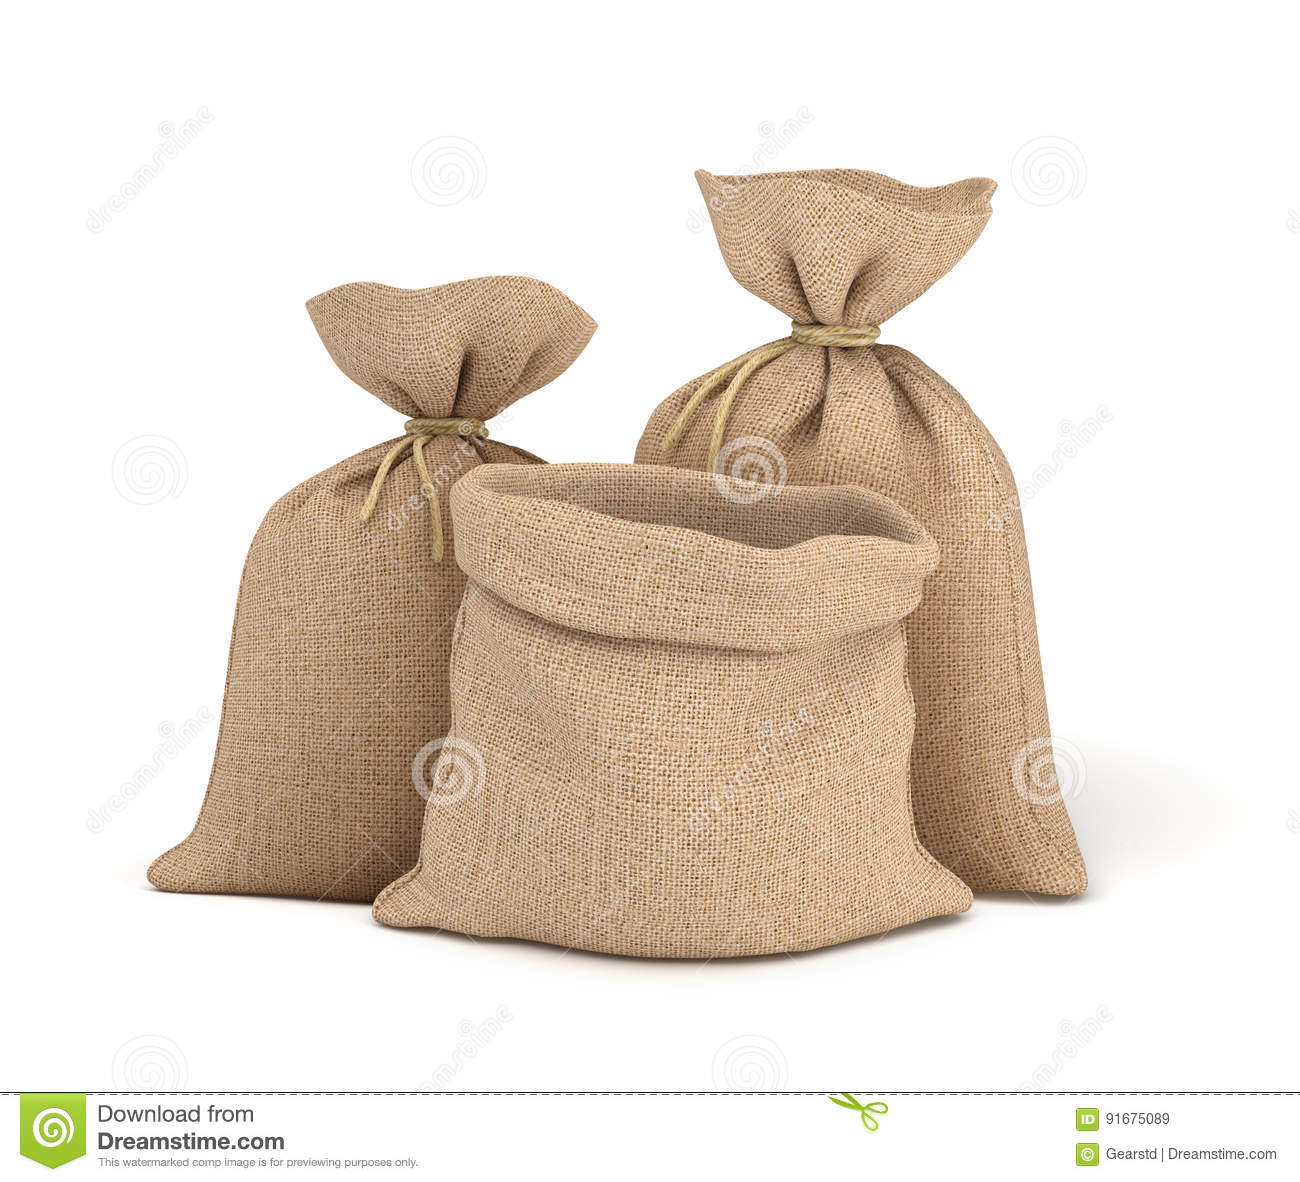 3d rendering of two tied canvas sacks and open sack in front view isolated on white background.